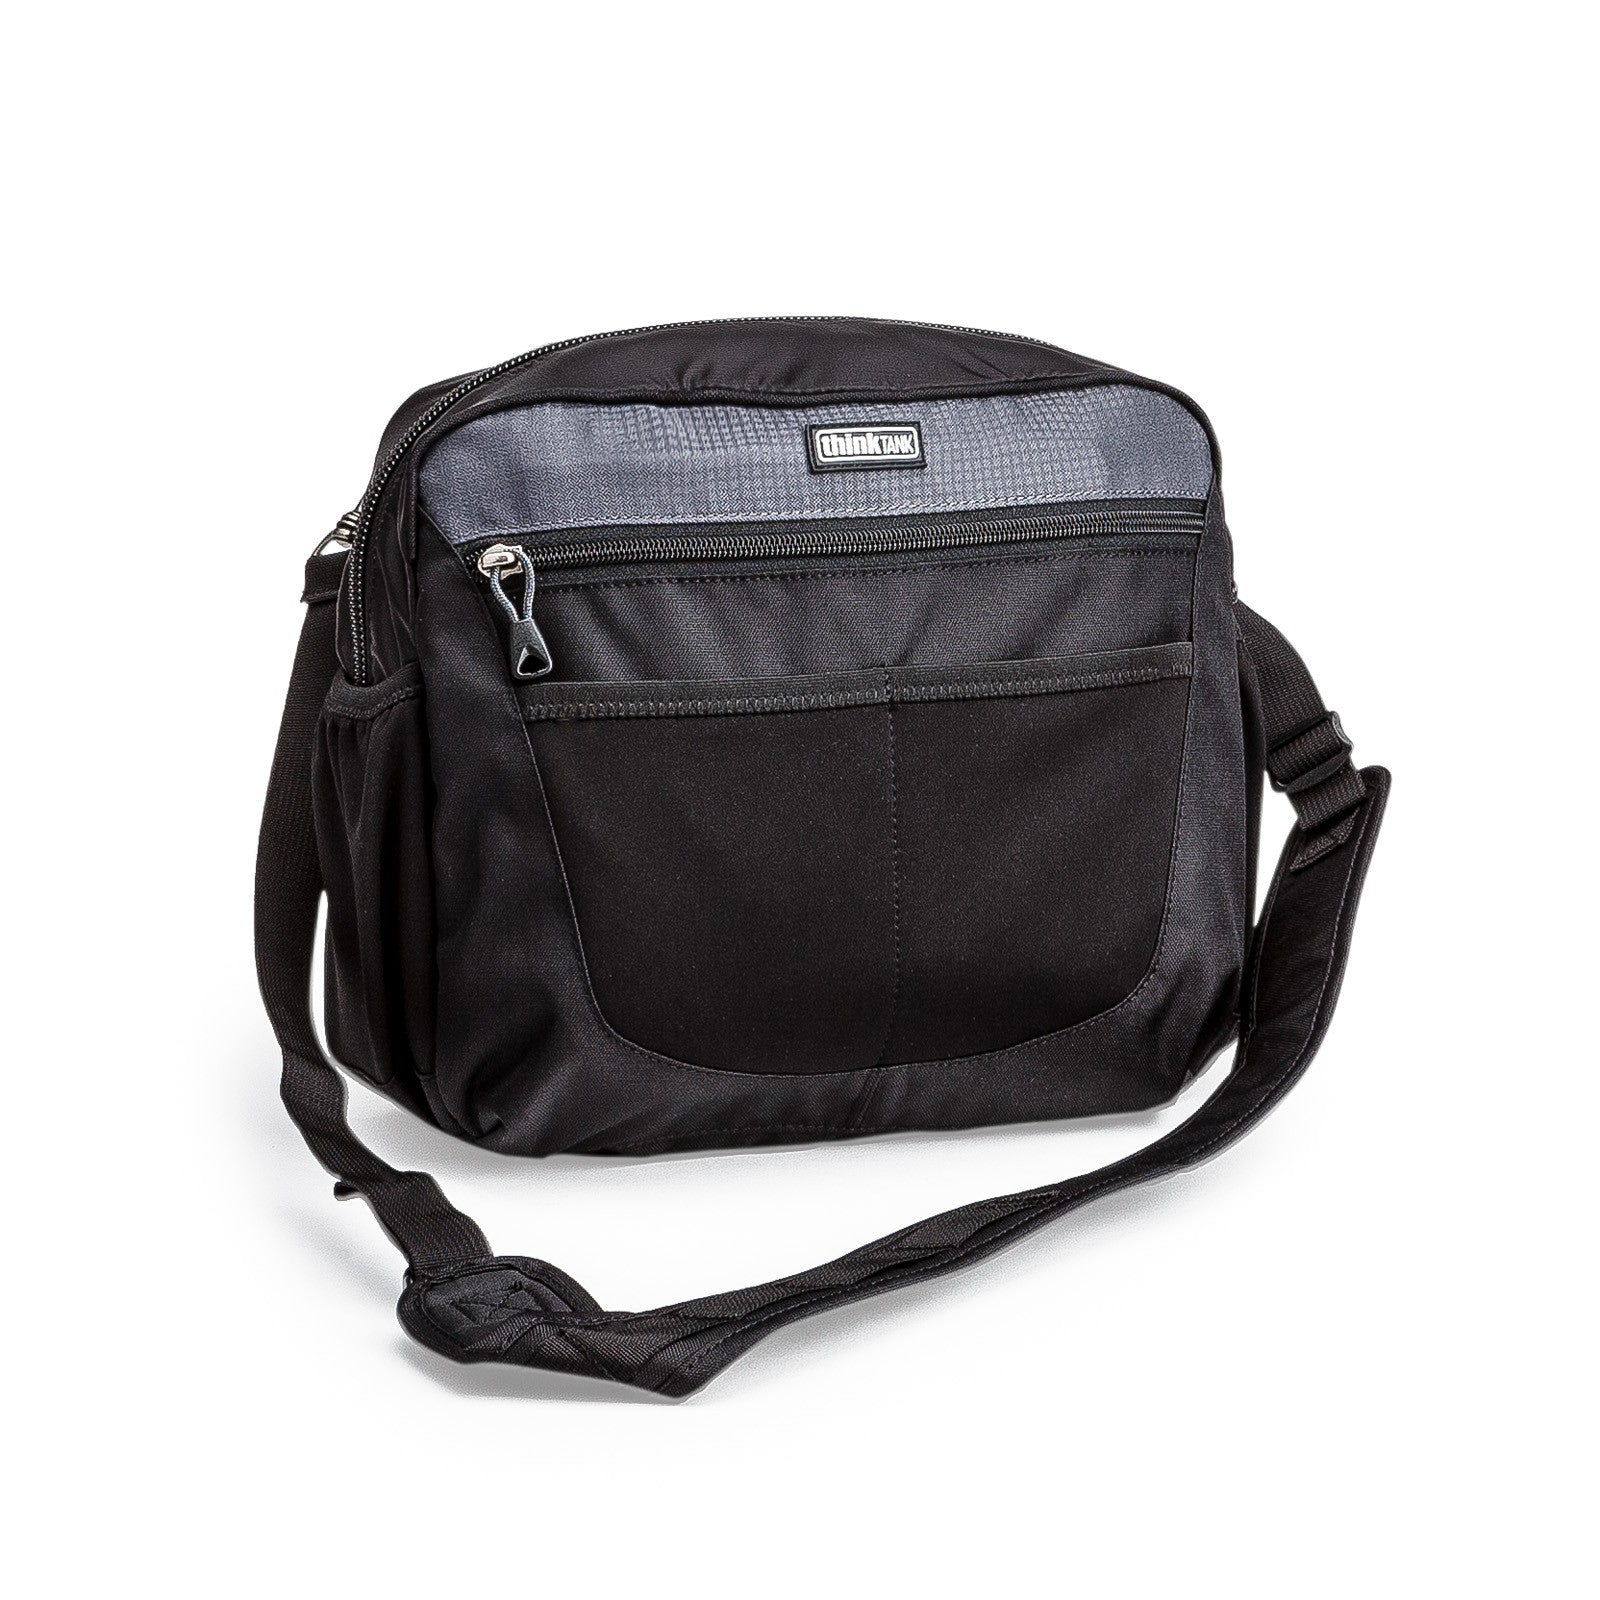 be6d087c88 Change Up V2 Versatile shoulder bag converts to beltpack or chestpack •  Think Tank Photo